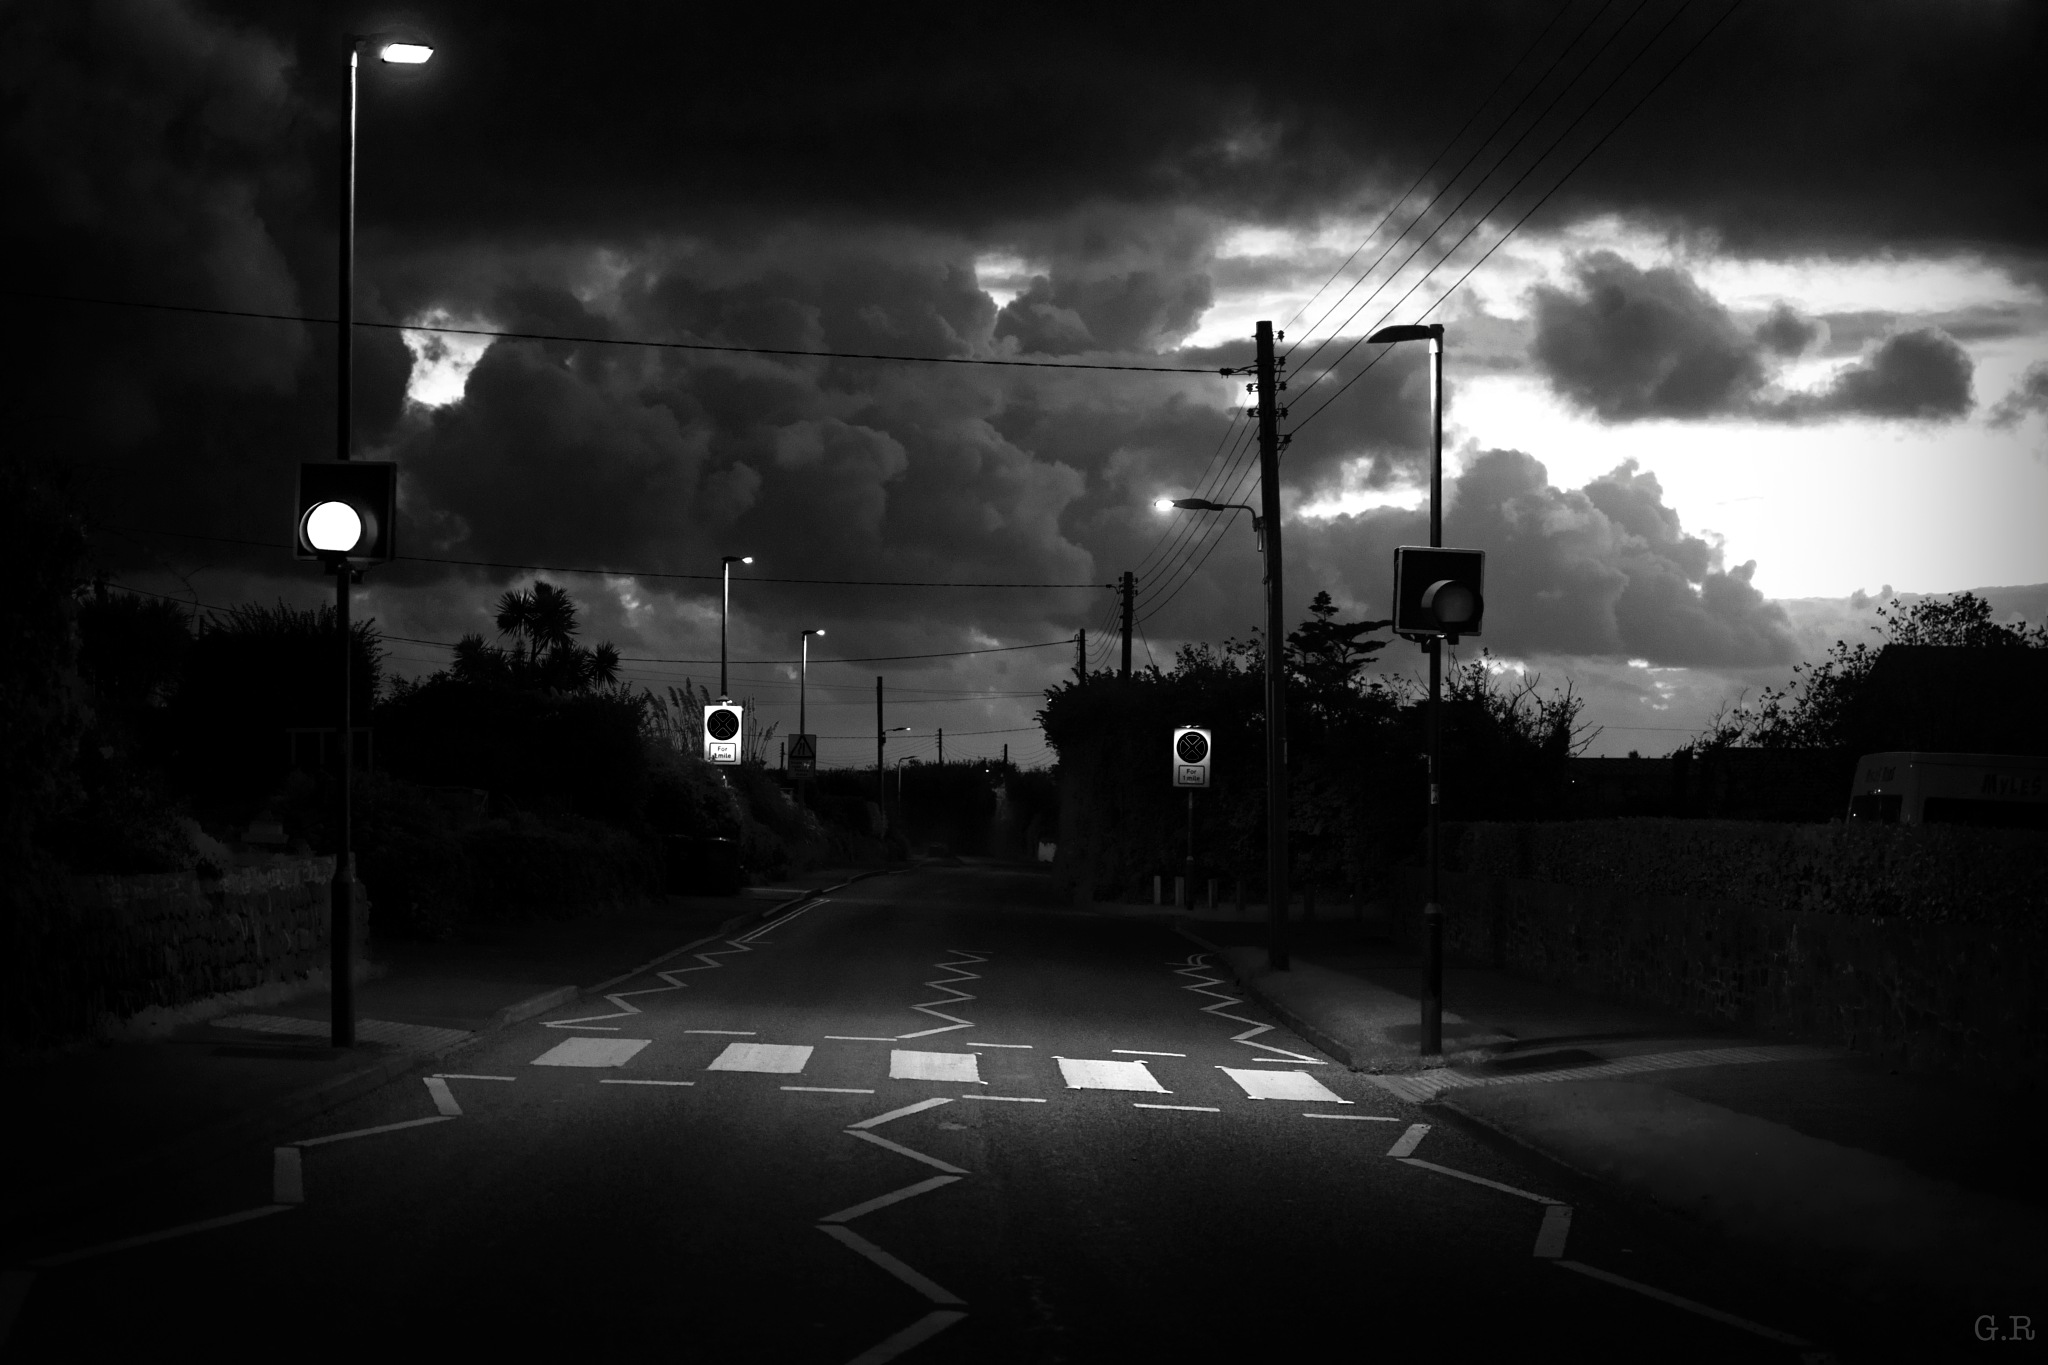 empty roads on stormy days by George Rayner